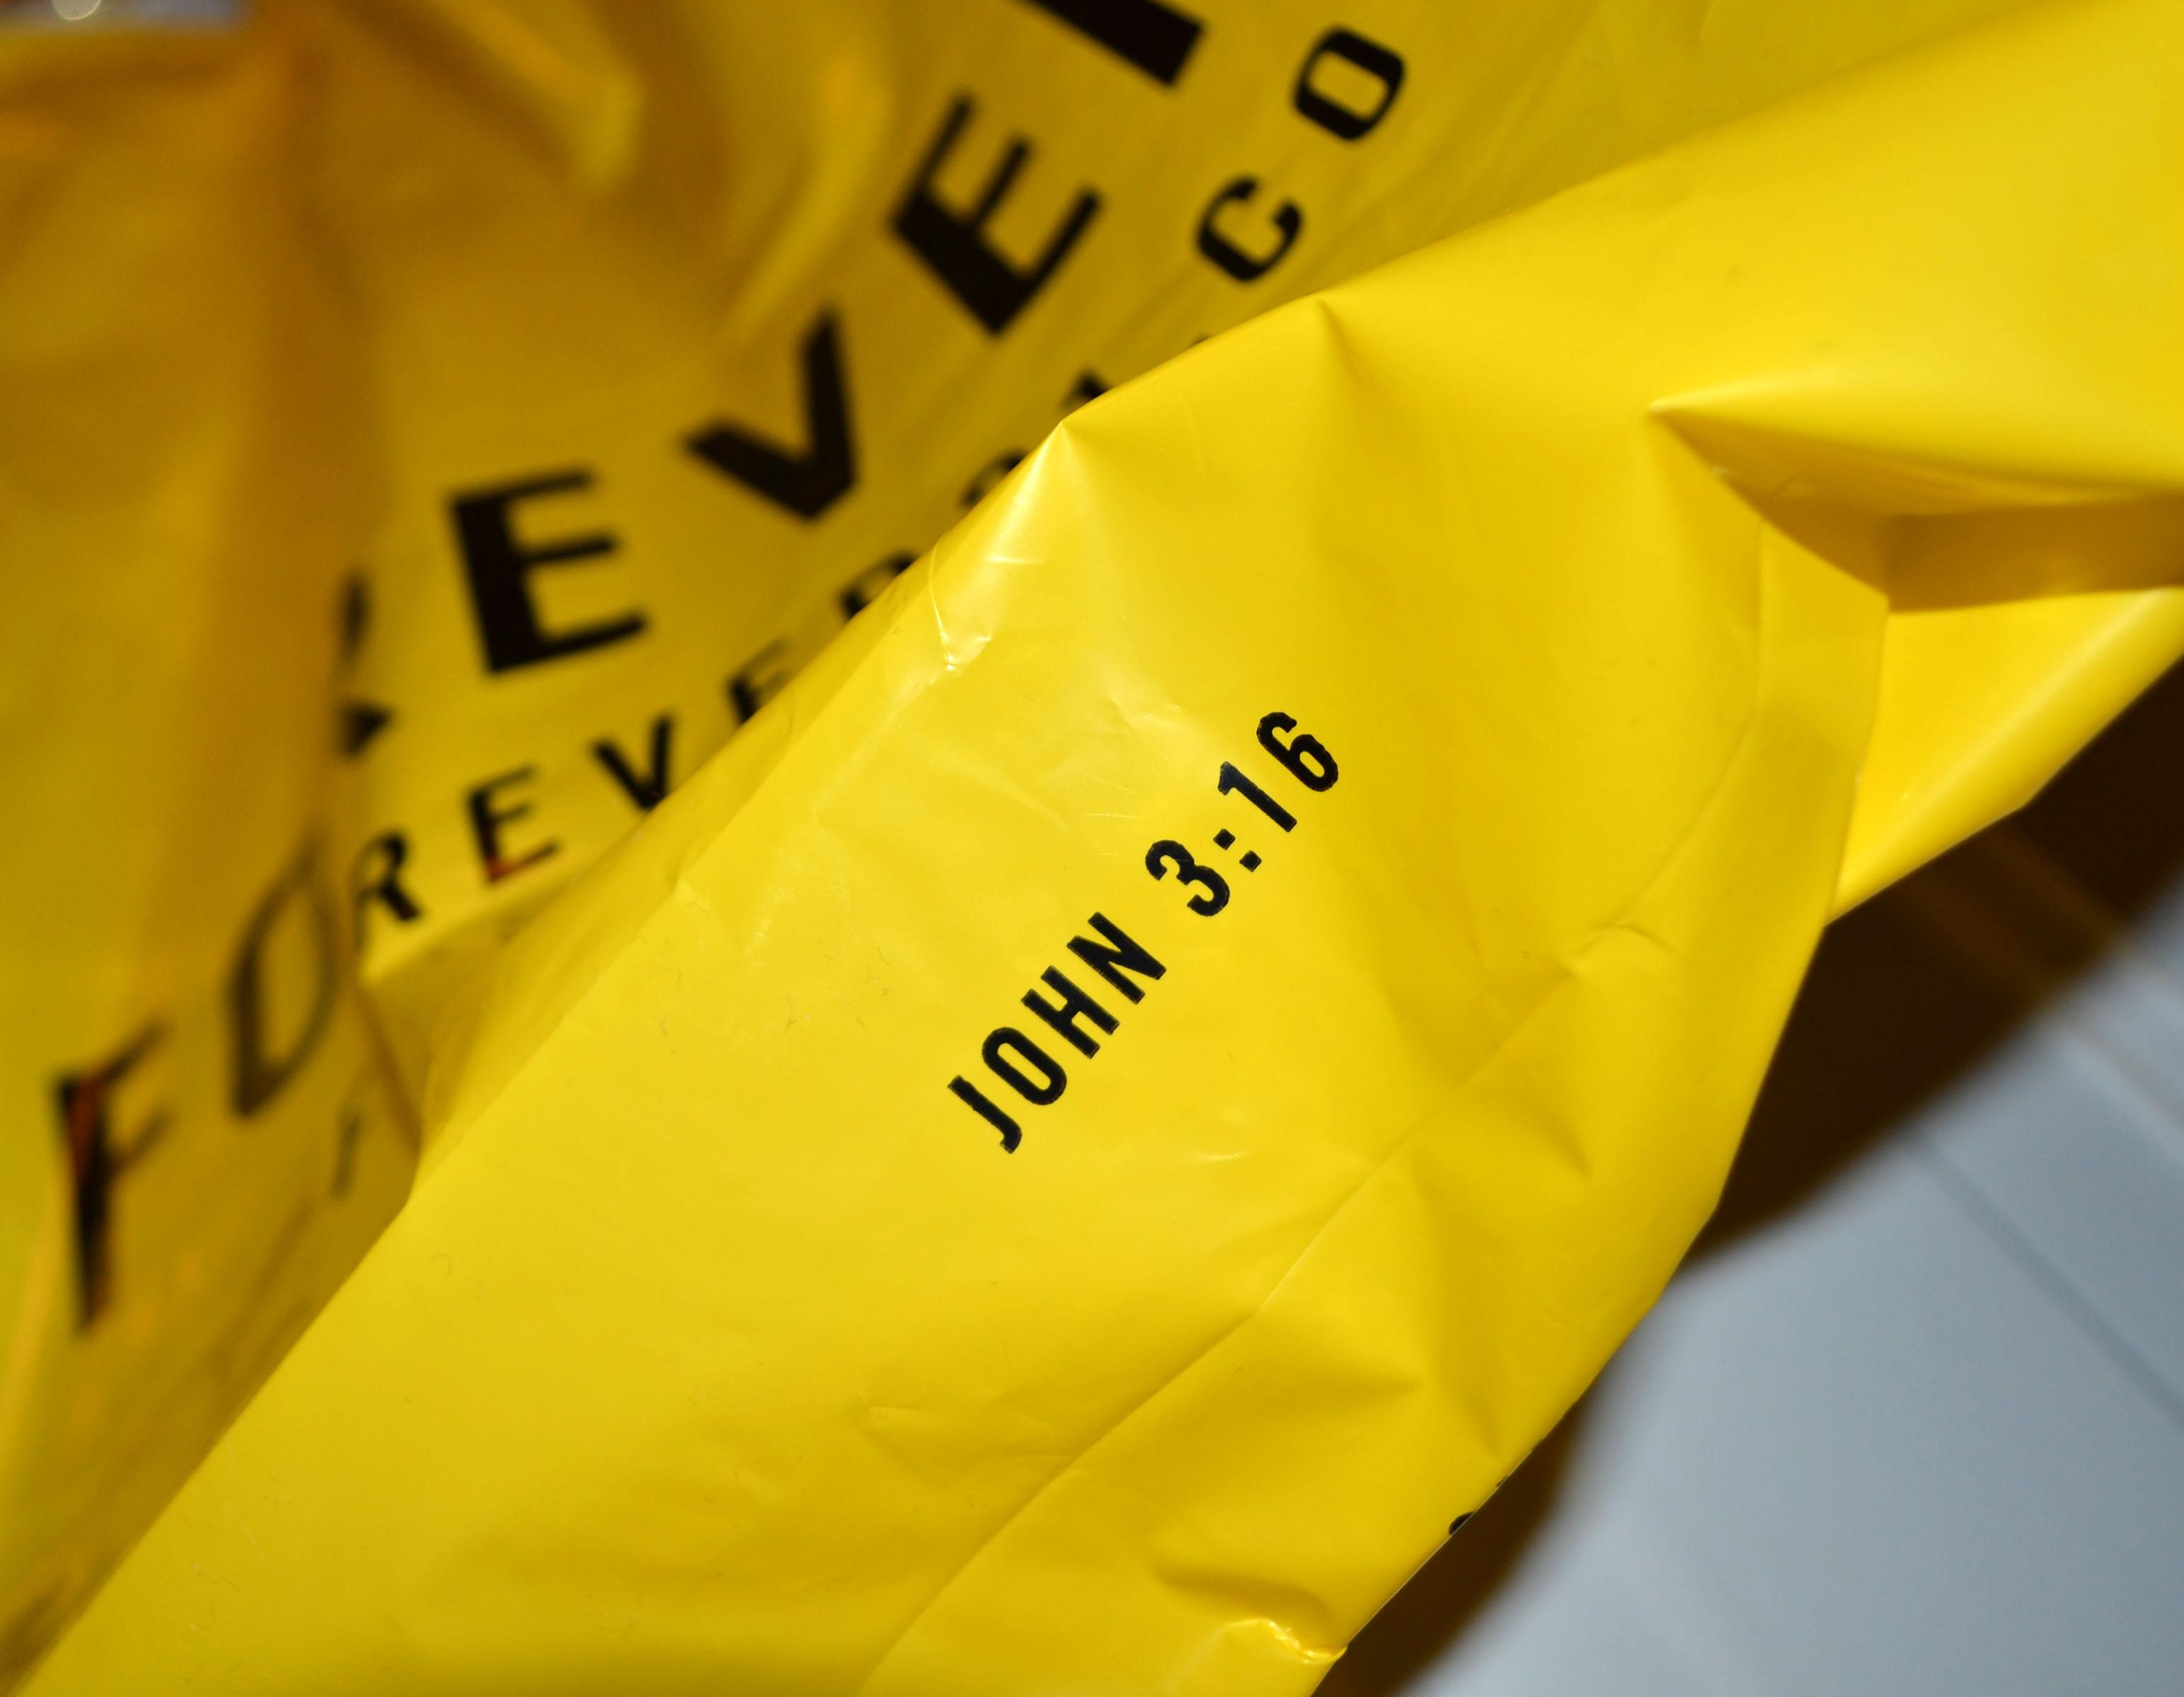 Forever 21 bags have the Bible verse John 3:16 written on the bottom.